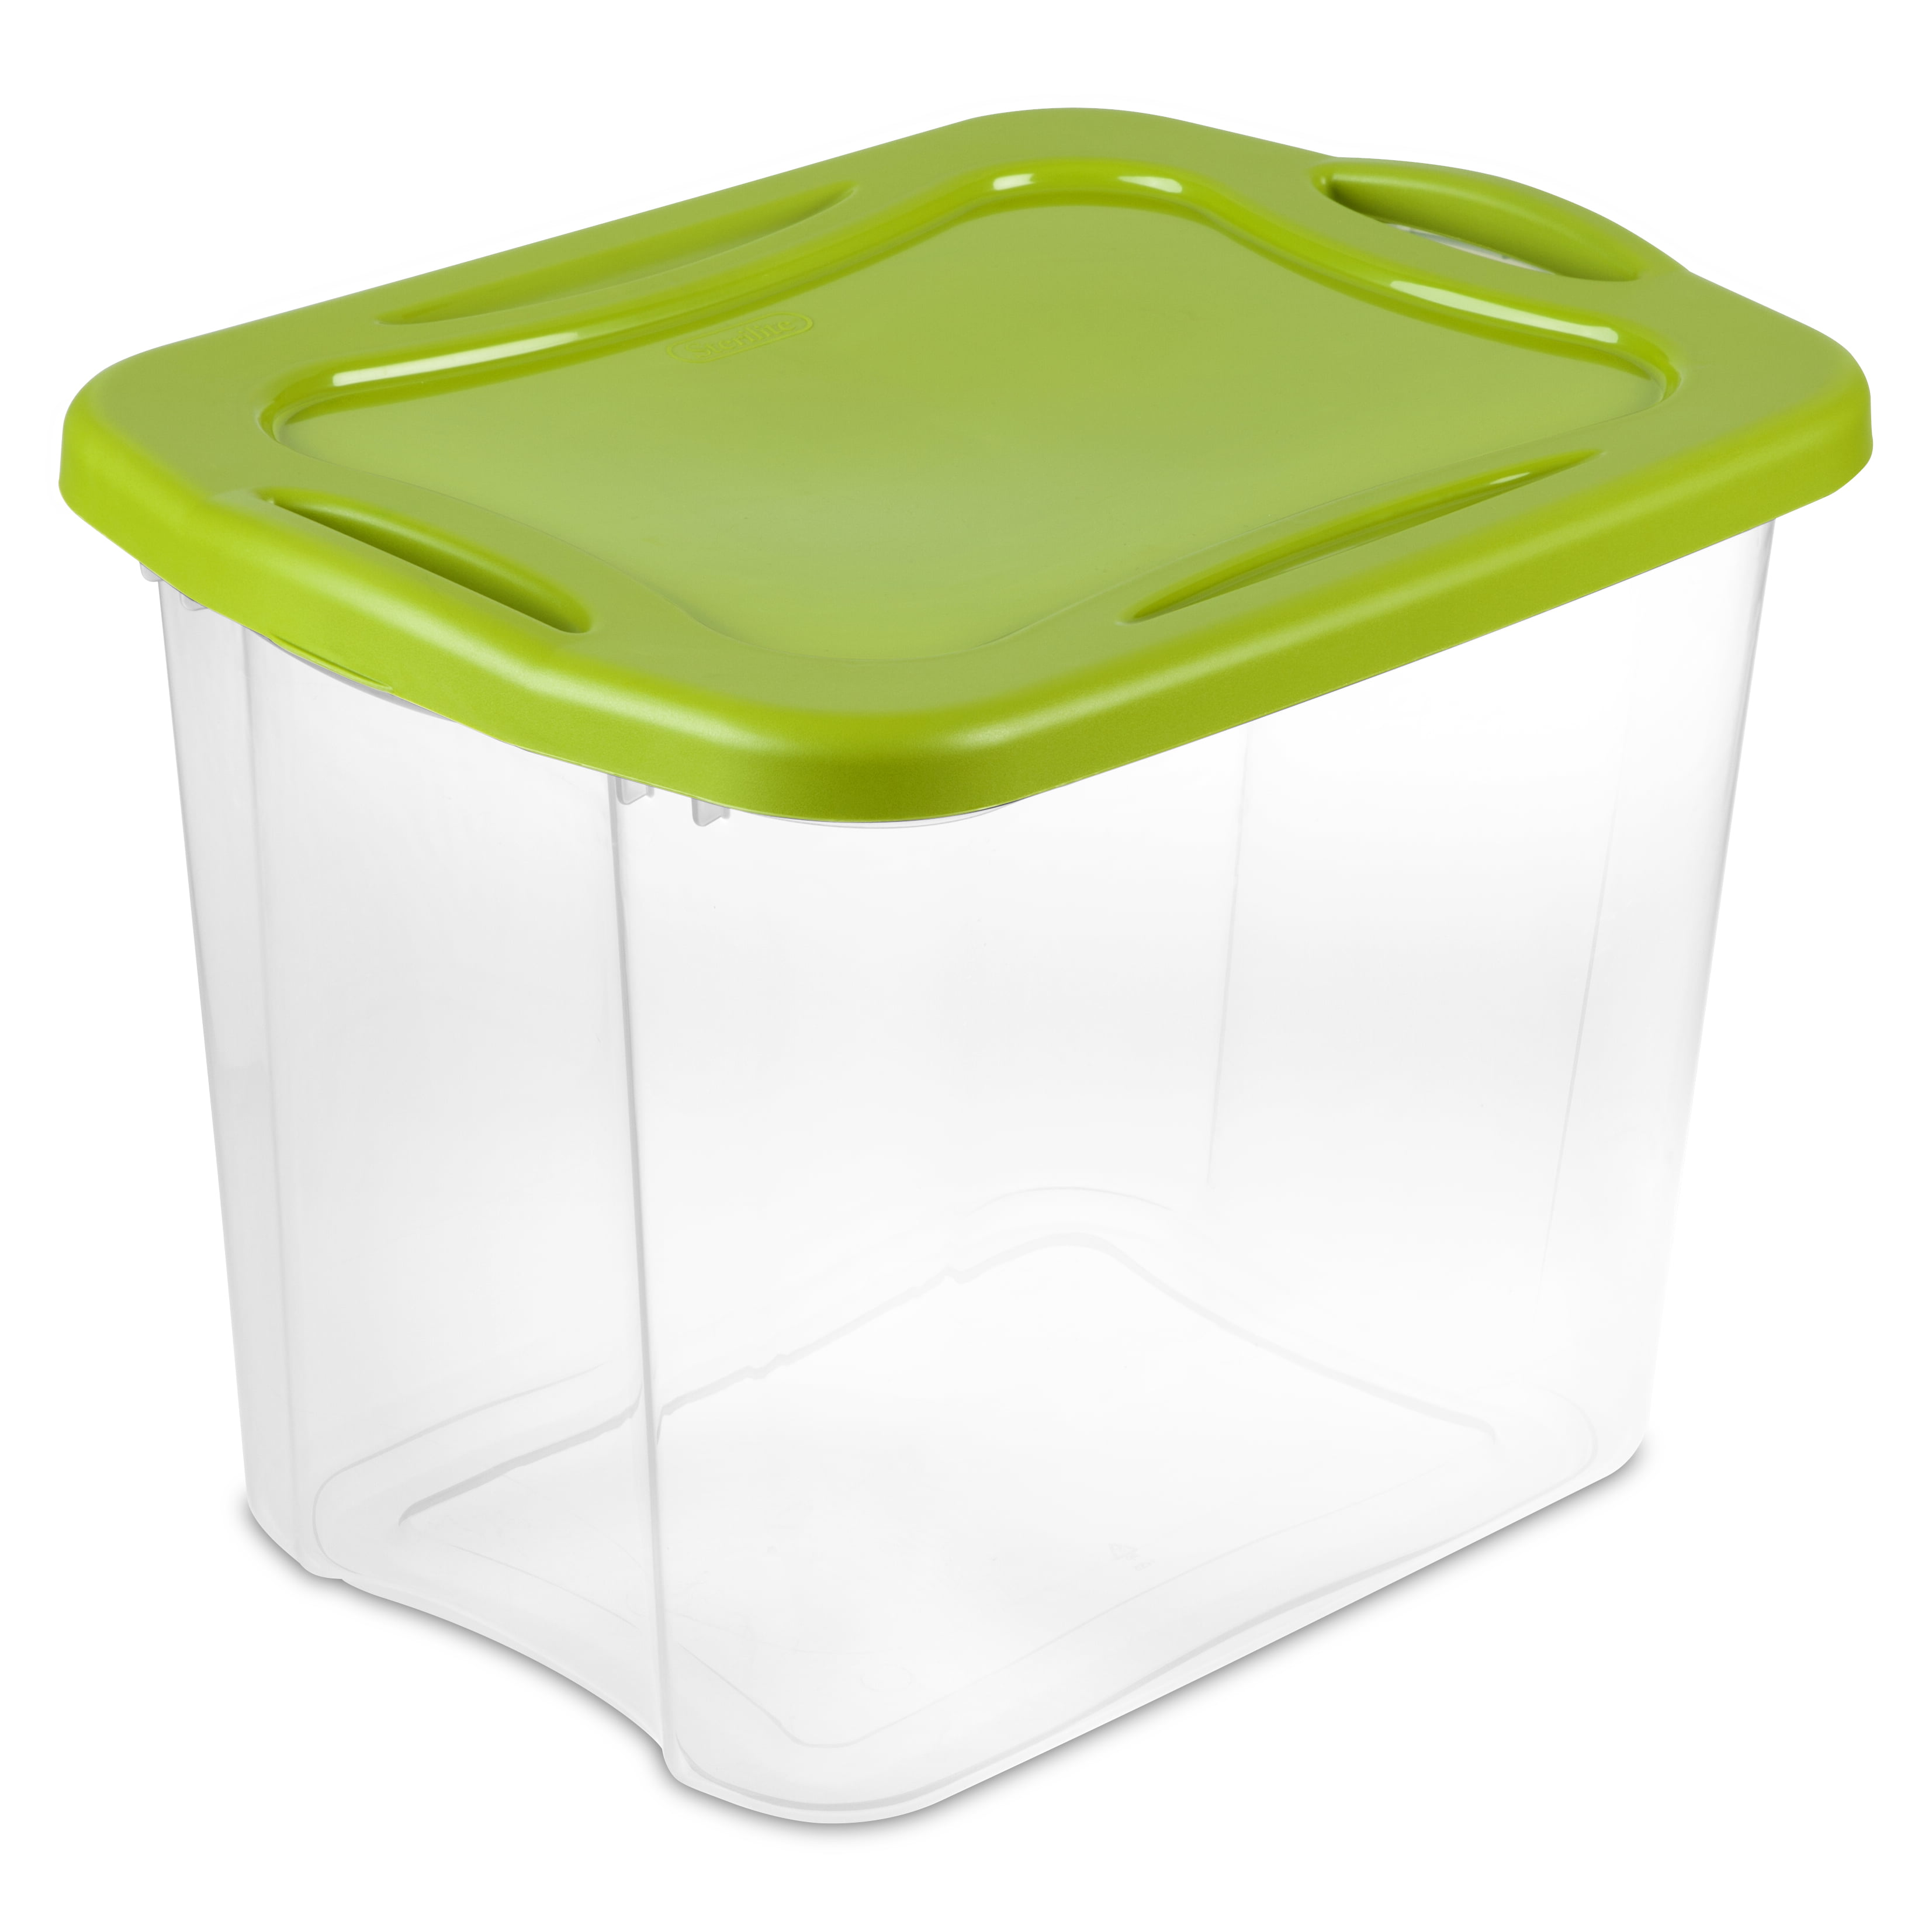 Sterilite 13.75 Clear & Spicy Lime EZ Carry Storage Tote, 2 Piece